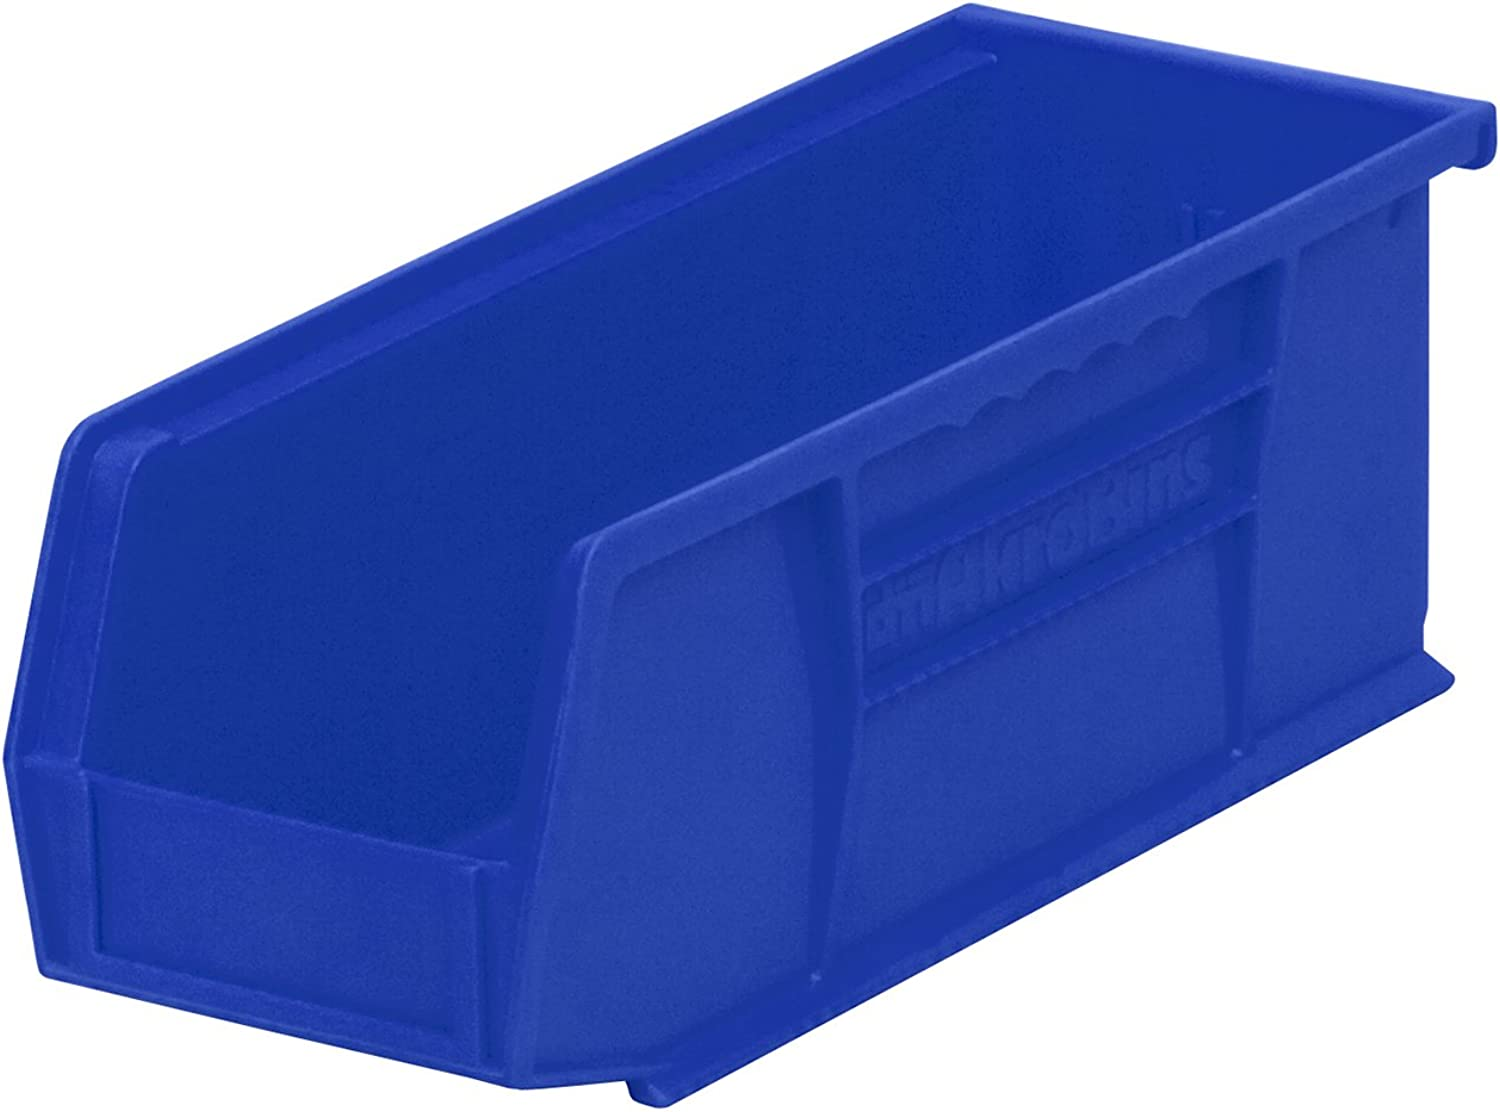 Akro-Mils 30224 Plastic Storage Stacking Hanging Akro Bin, 11-Inch by 4-Inch by 4-Inch, bluee, Case of 12